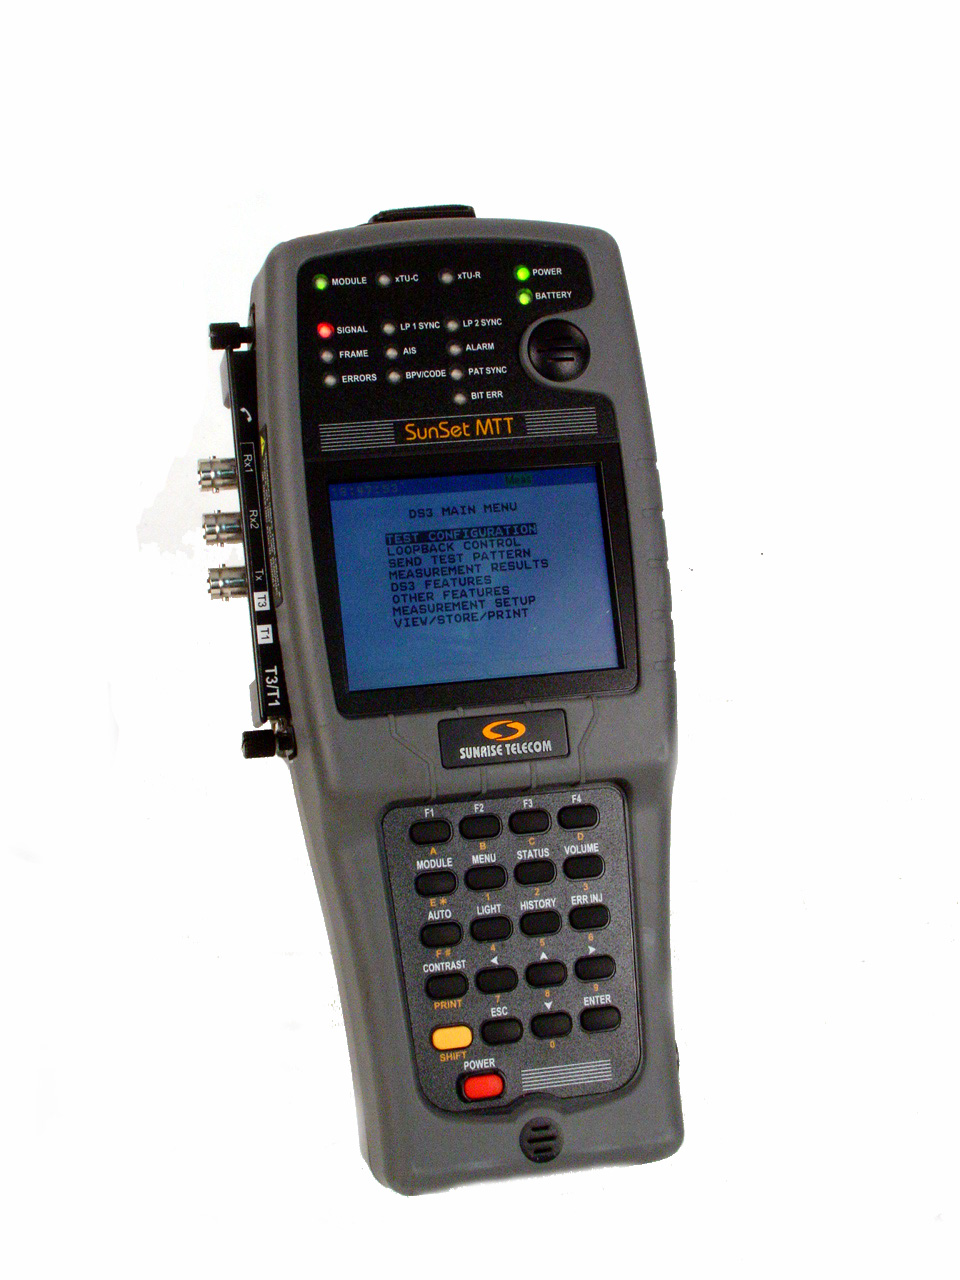 Sunrise Telecom MTT with SSMTT-24 just arrived